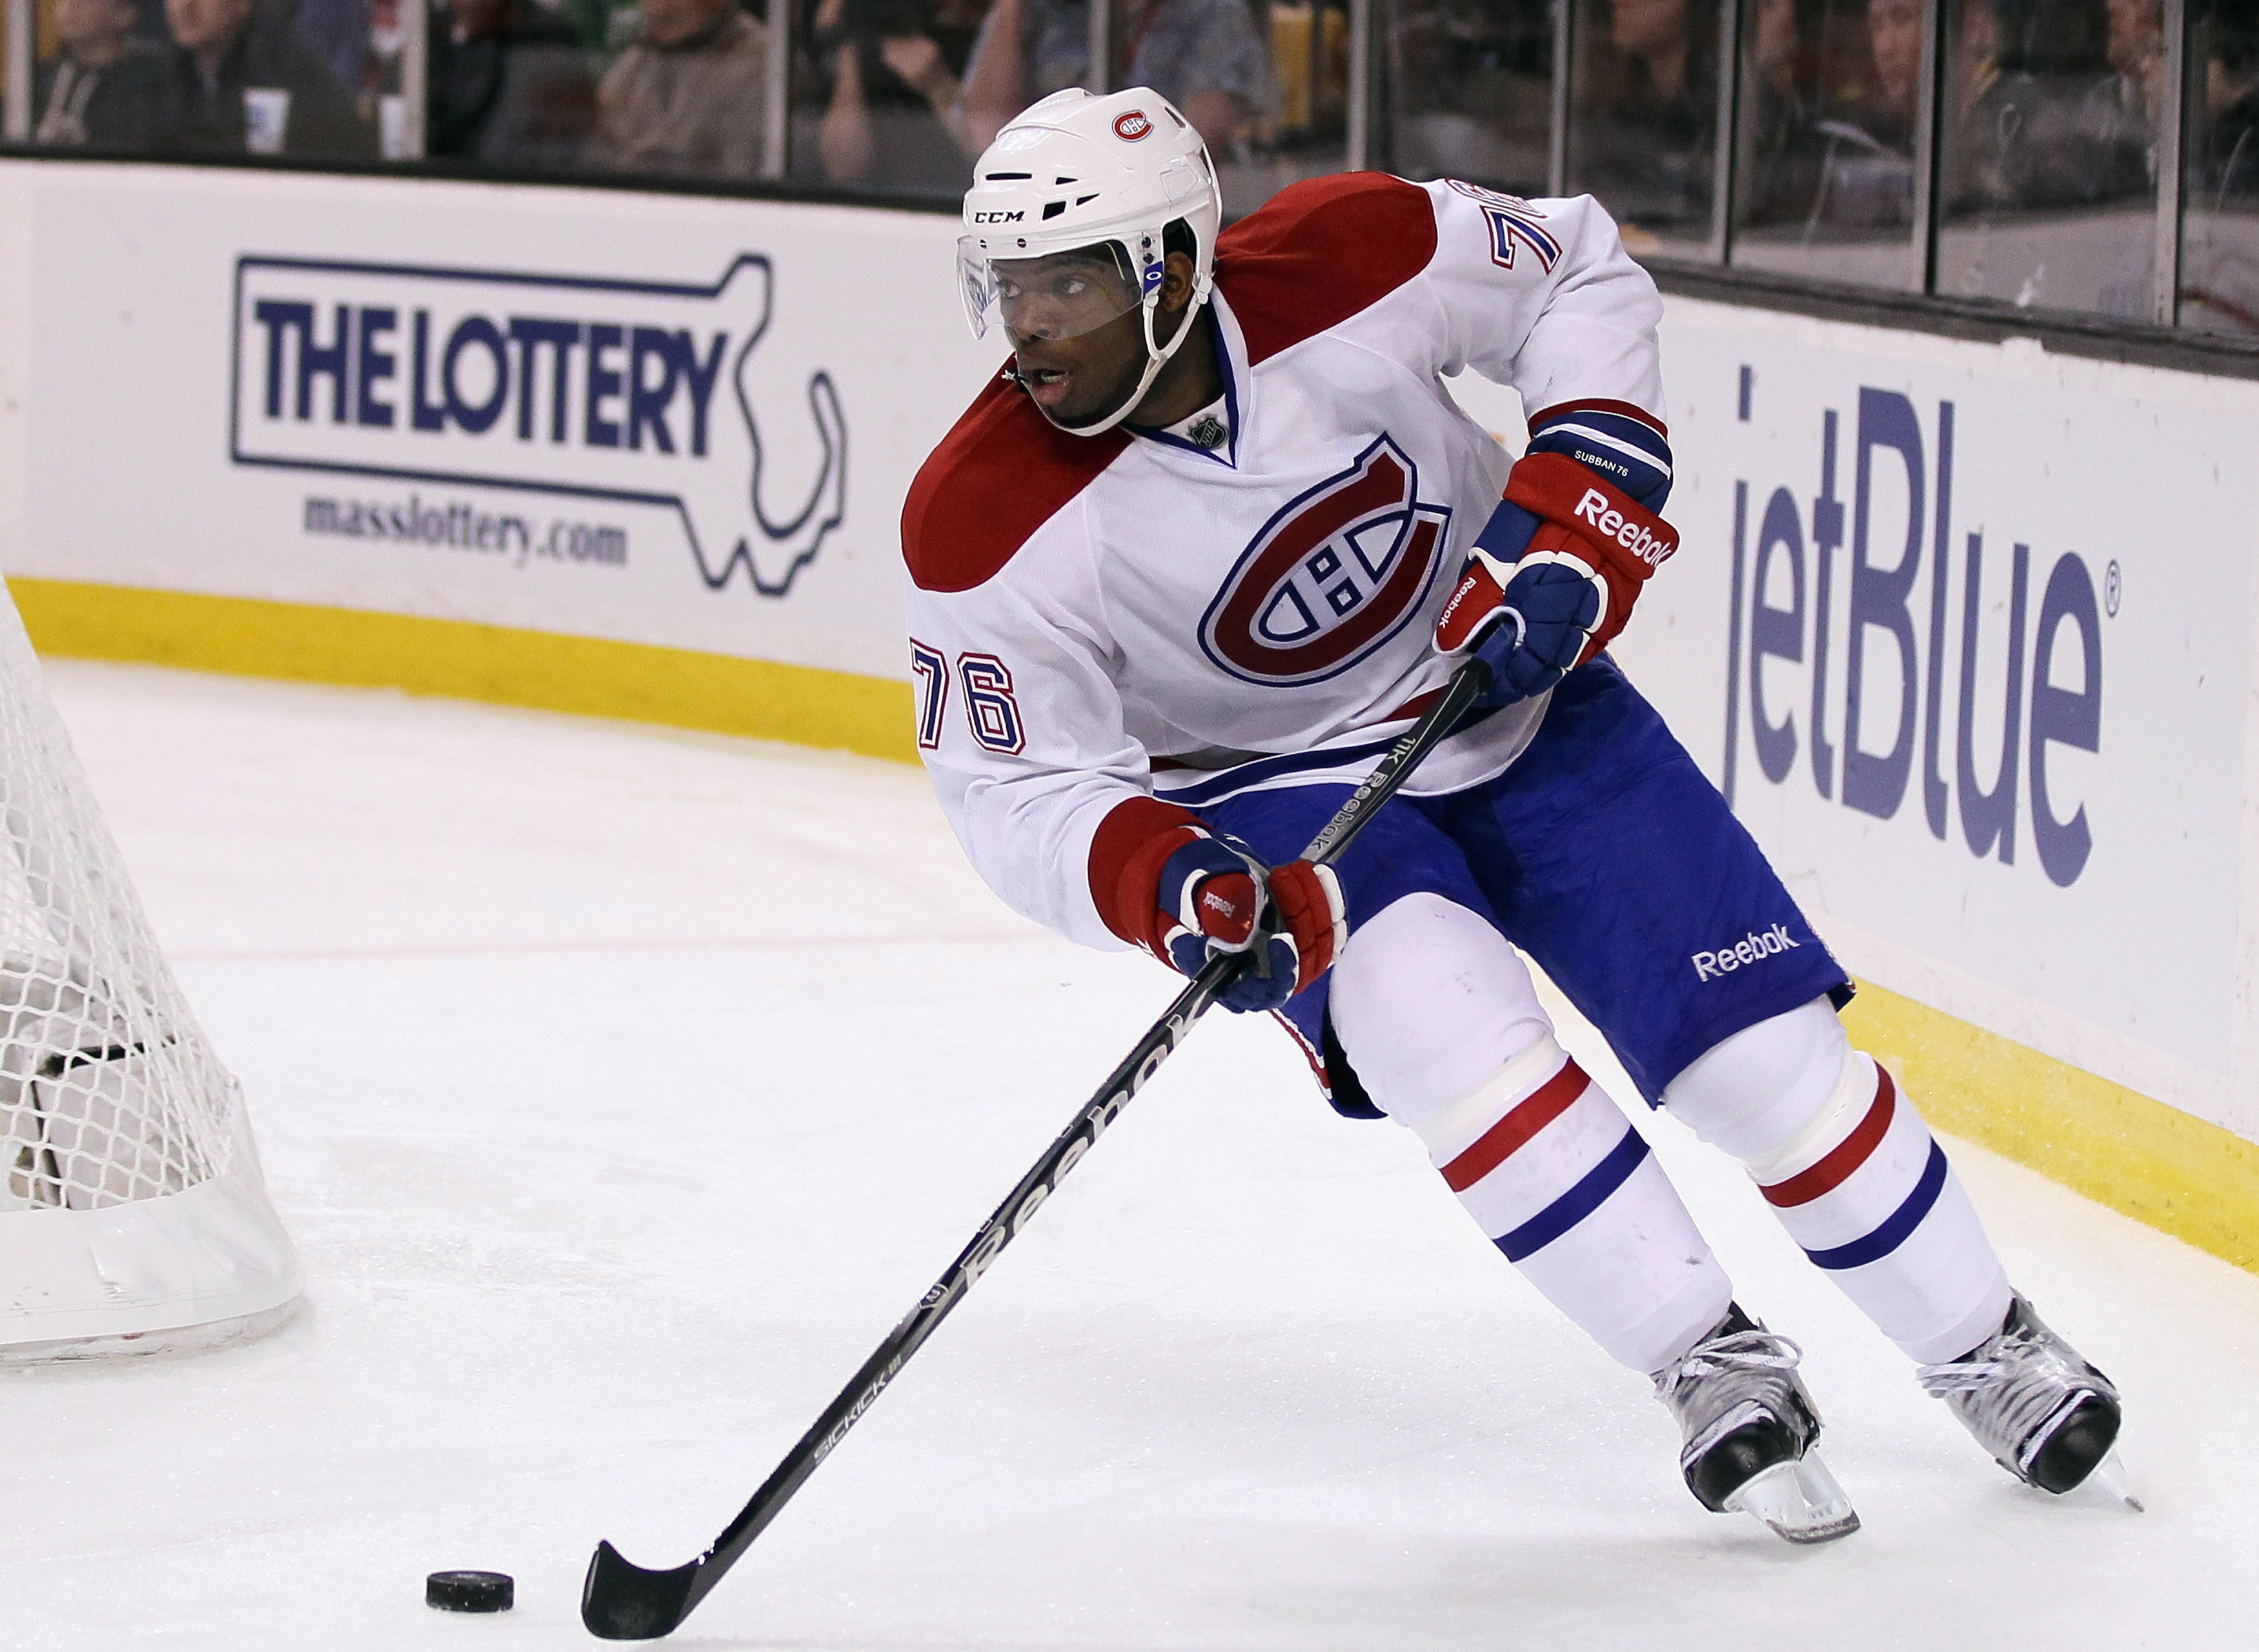 BOSTON, MA - APRIL 16:  P.K. Subban #76 of the Montreal Canadiens takes the puck against the Boston Bruins  in Game Two of the Eastern Conference Quarterfinals during the 2011 NHL Stanley Cup Playoffs at TD Garden on April 16, 2011 in Boston, Massachusett